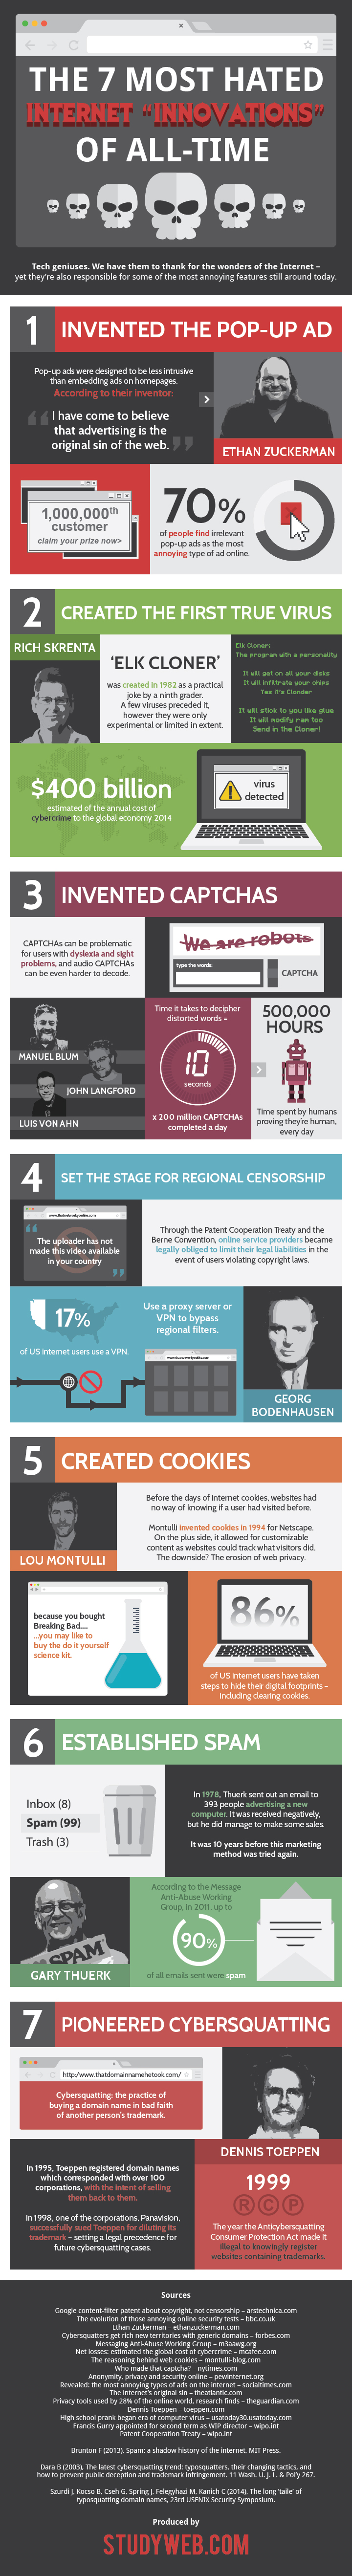 """The 7 Most Hated Internet """"Innovations"""" of All-Time - An Infographic from HTML.com"""